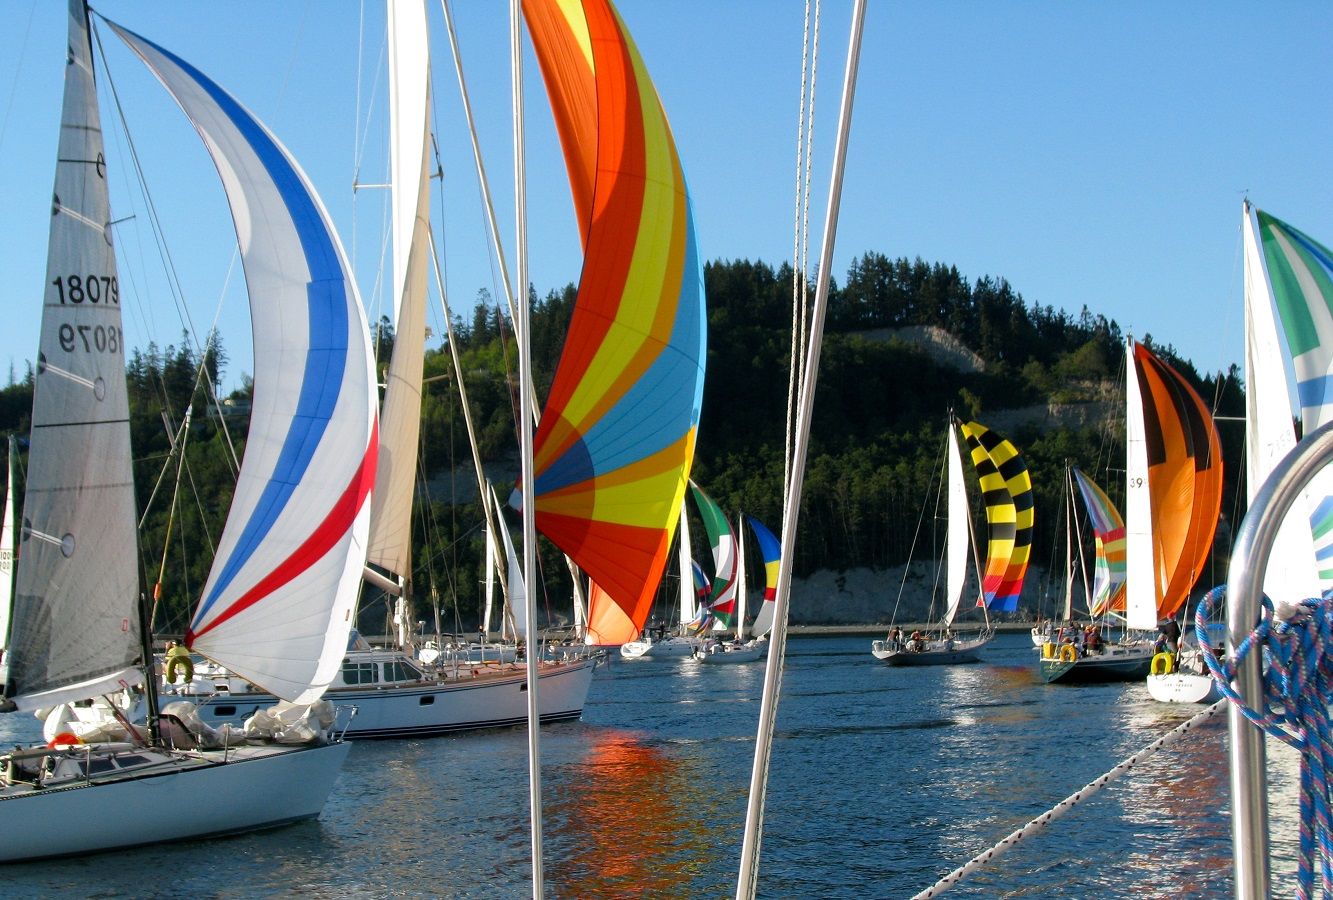 Sand Sail Point - Seattle's Community Boating Center